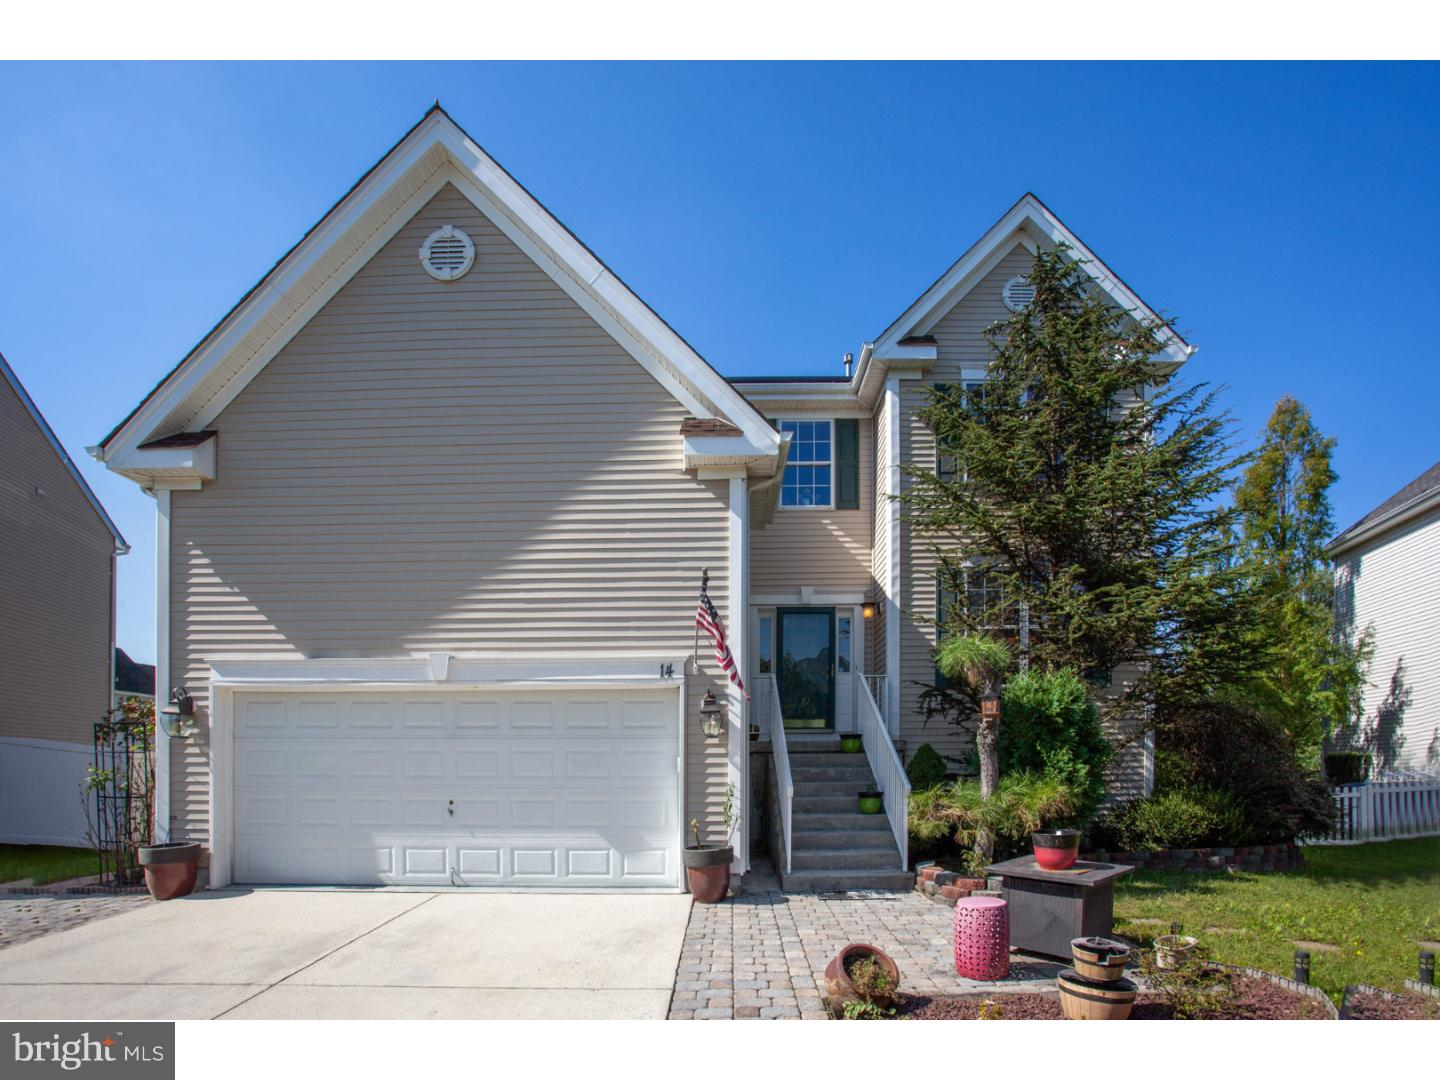 Single Family Home for Sale at 14 GRANDE BLVD Delran, New Jersey 08075 United States